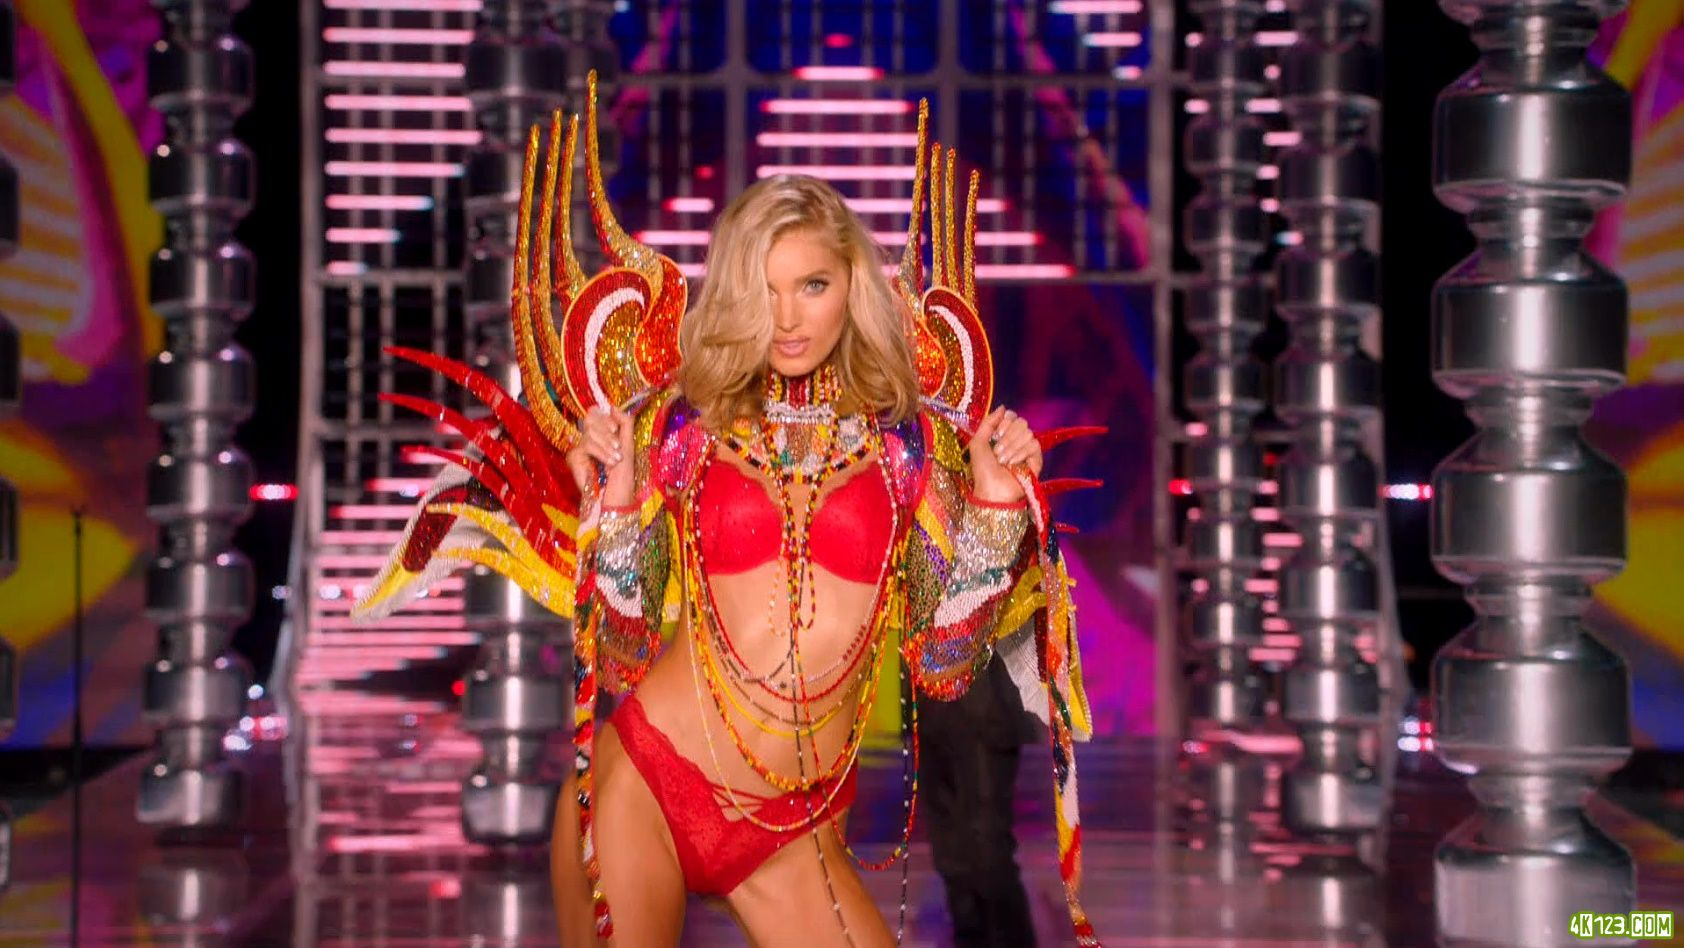 The.Victoria.Secret.Fashion.Show.2017.1080i.HDTV.DTS-HD.MA5.1.H264-ALANiS.mkv_2017_04.jpg